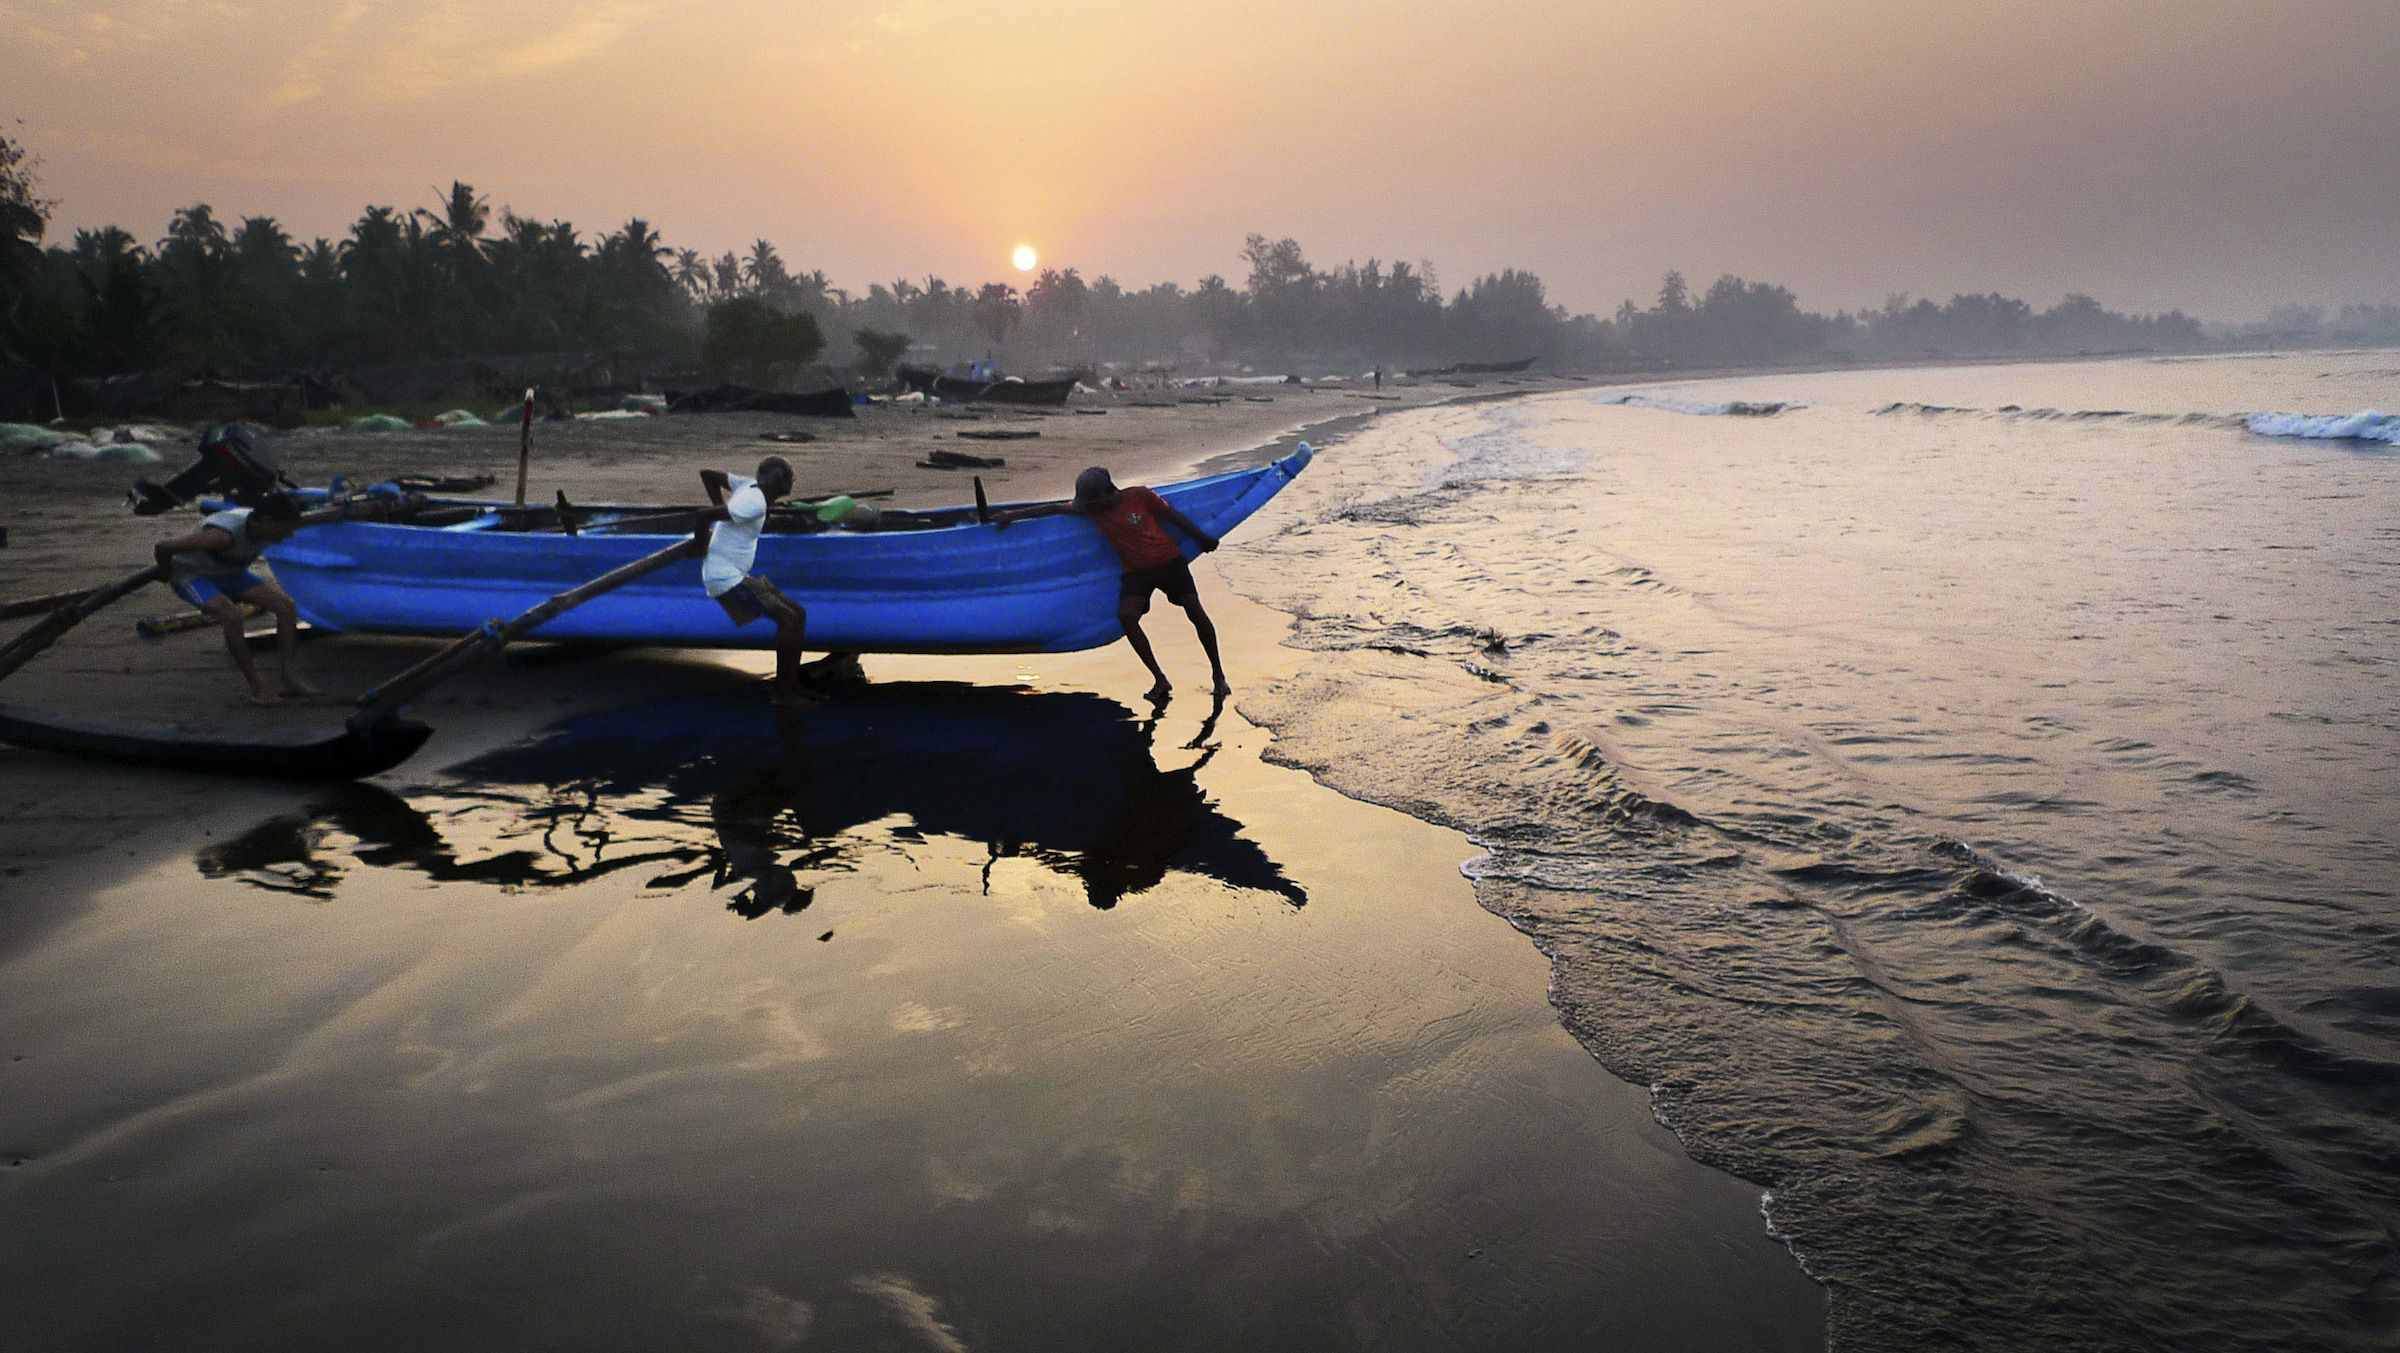 Indian fishermen push their boat ashore at sunrise after a night of fishing at Morjim beach in north Goa, on the Arabian Sea, southern India, Friday, March 12, 2010. (AP Photo/Kevin Frayer)